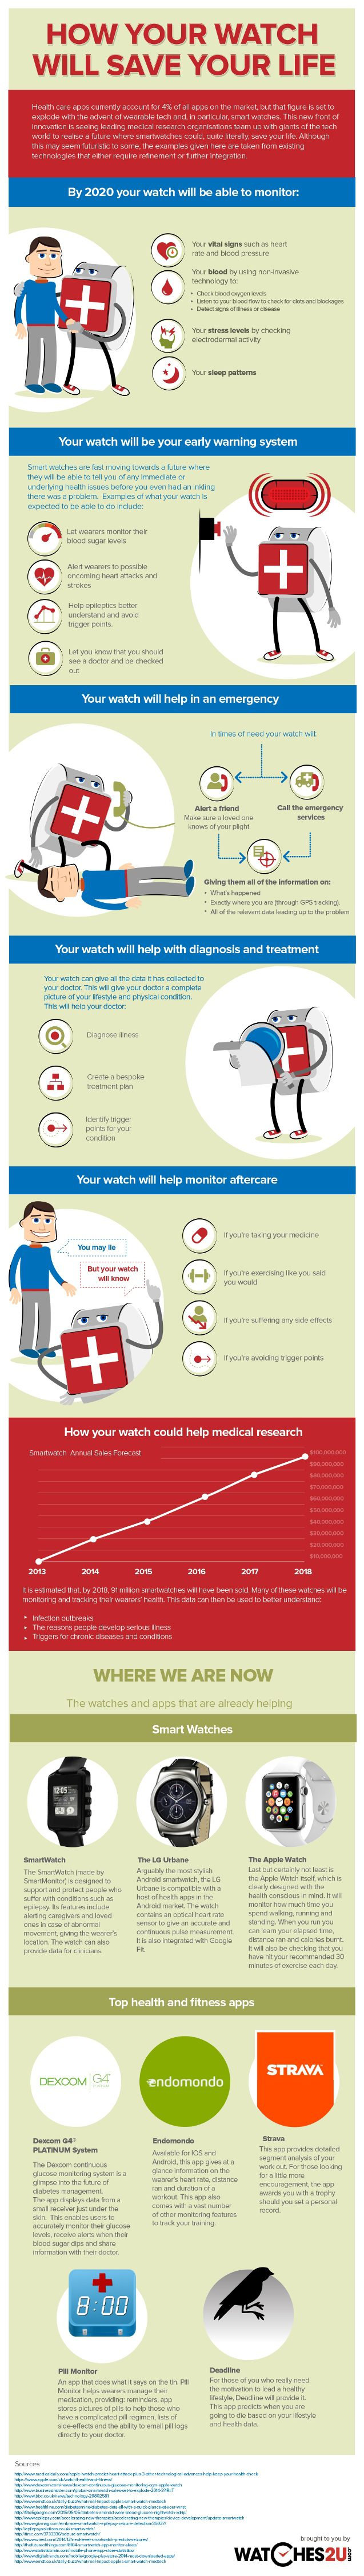 How your watch will save your life - final6